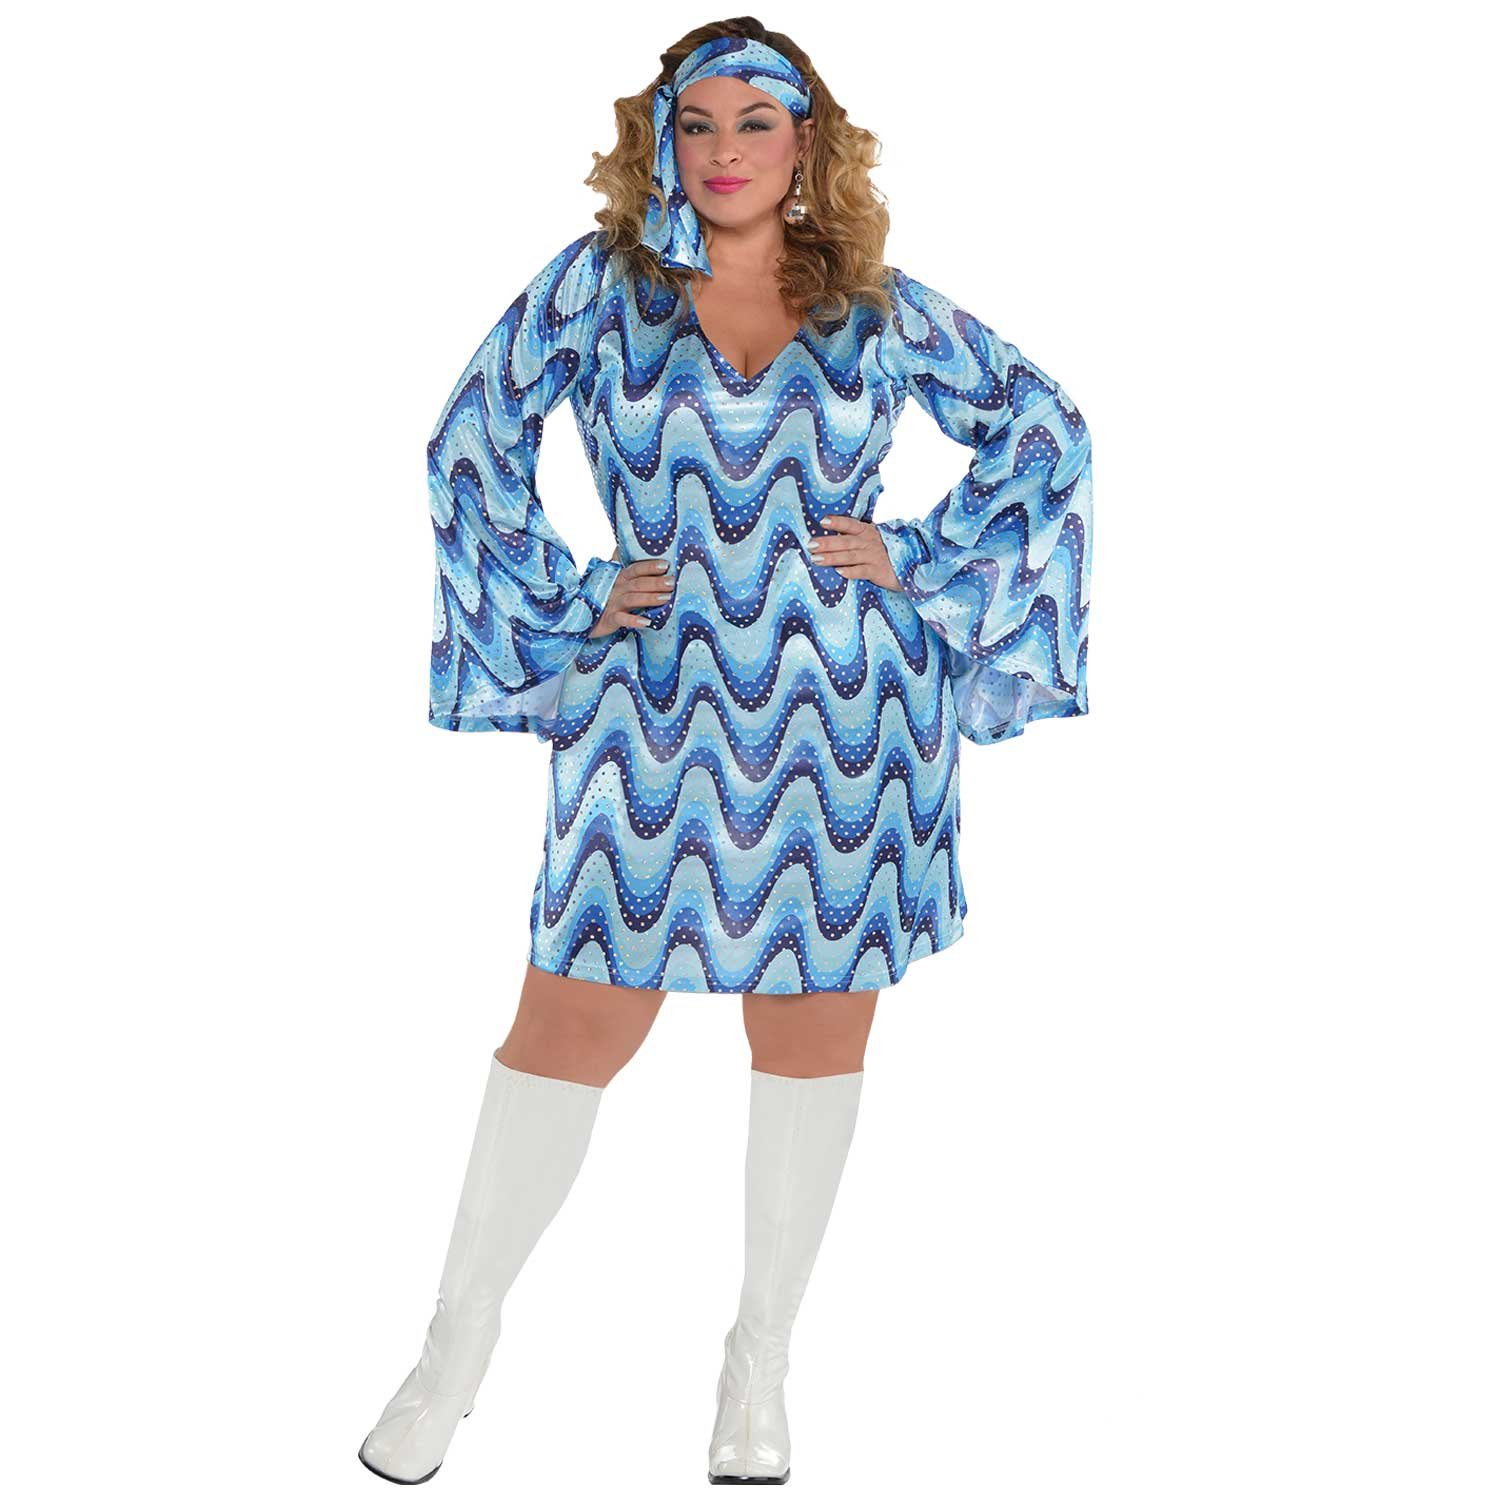 Plus Size Disco Lady Costume - Dress and Headscarf - Sizes 8 to 20